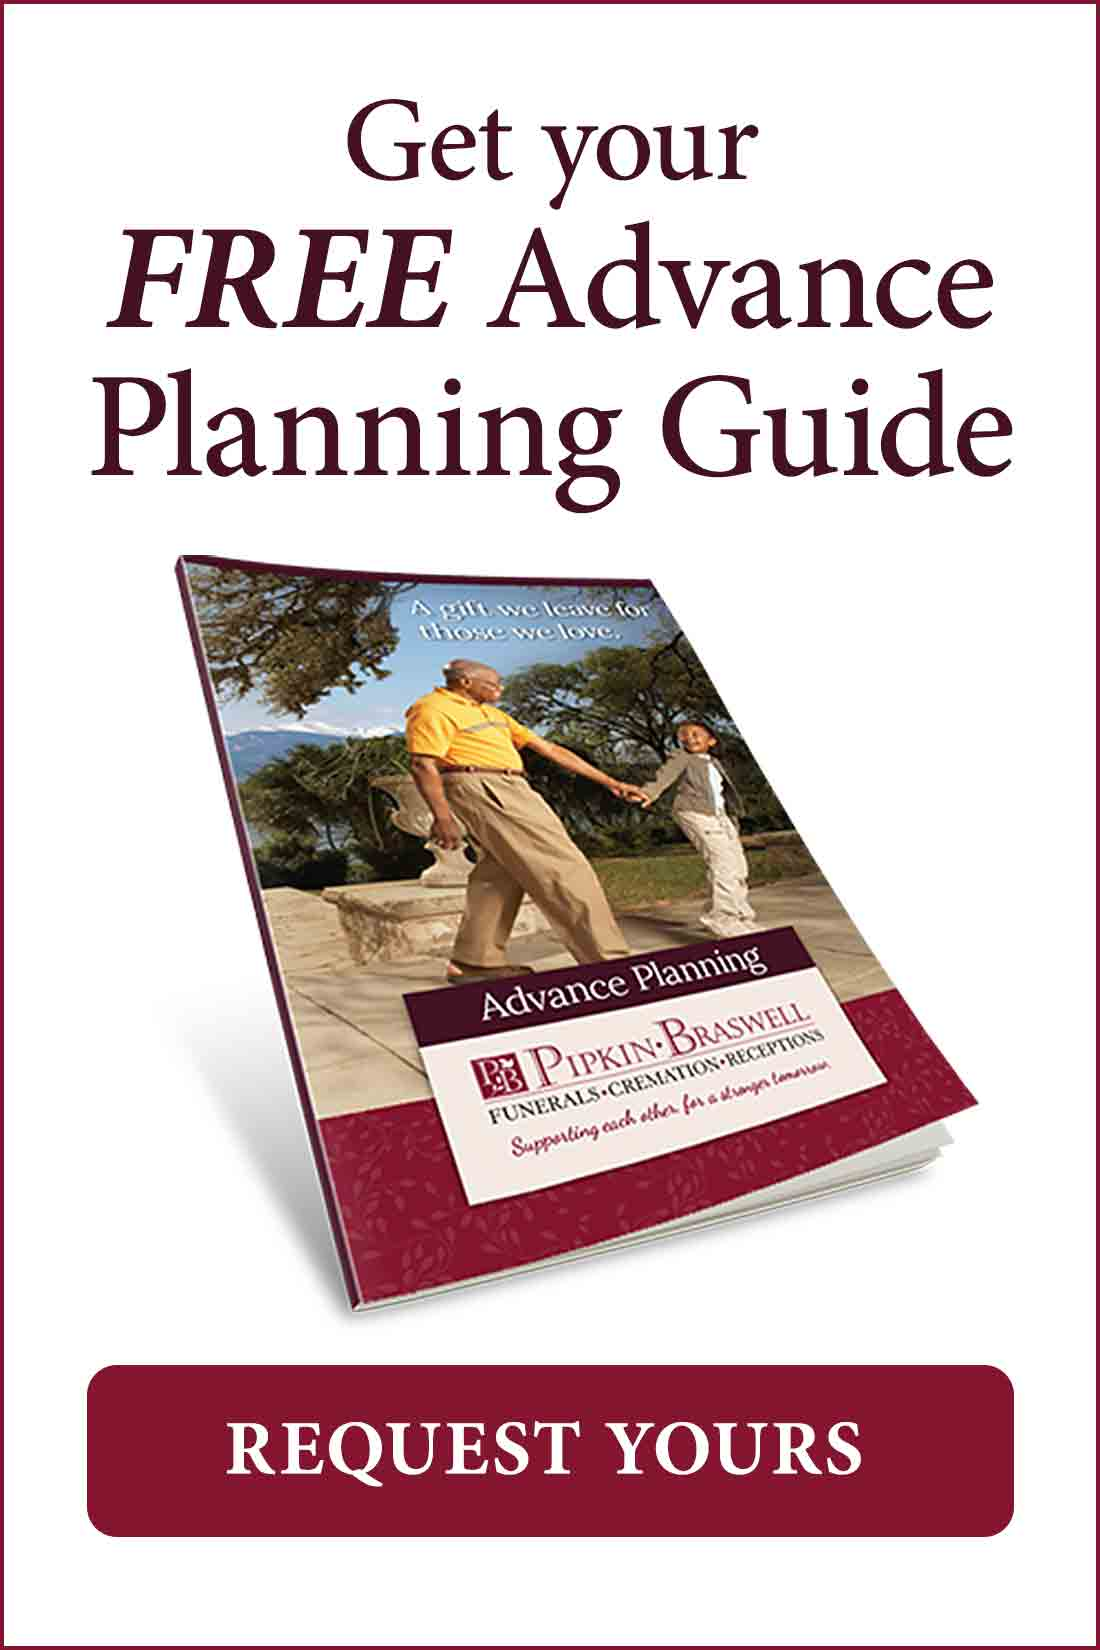 Get your FREE Advance Planning Guide